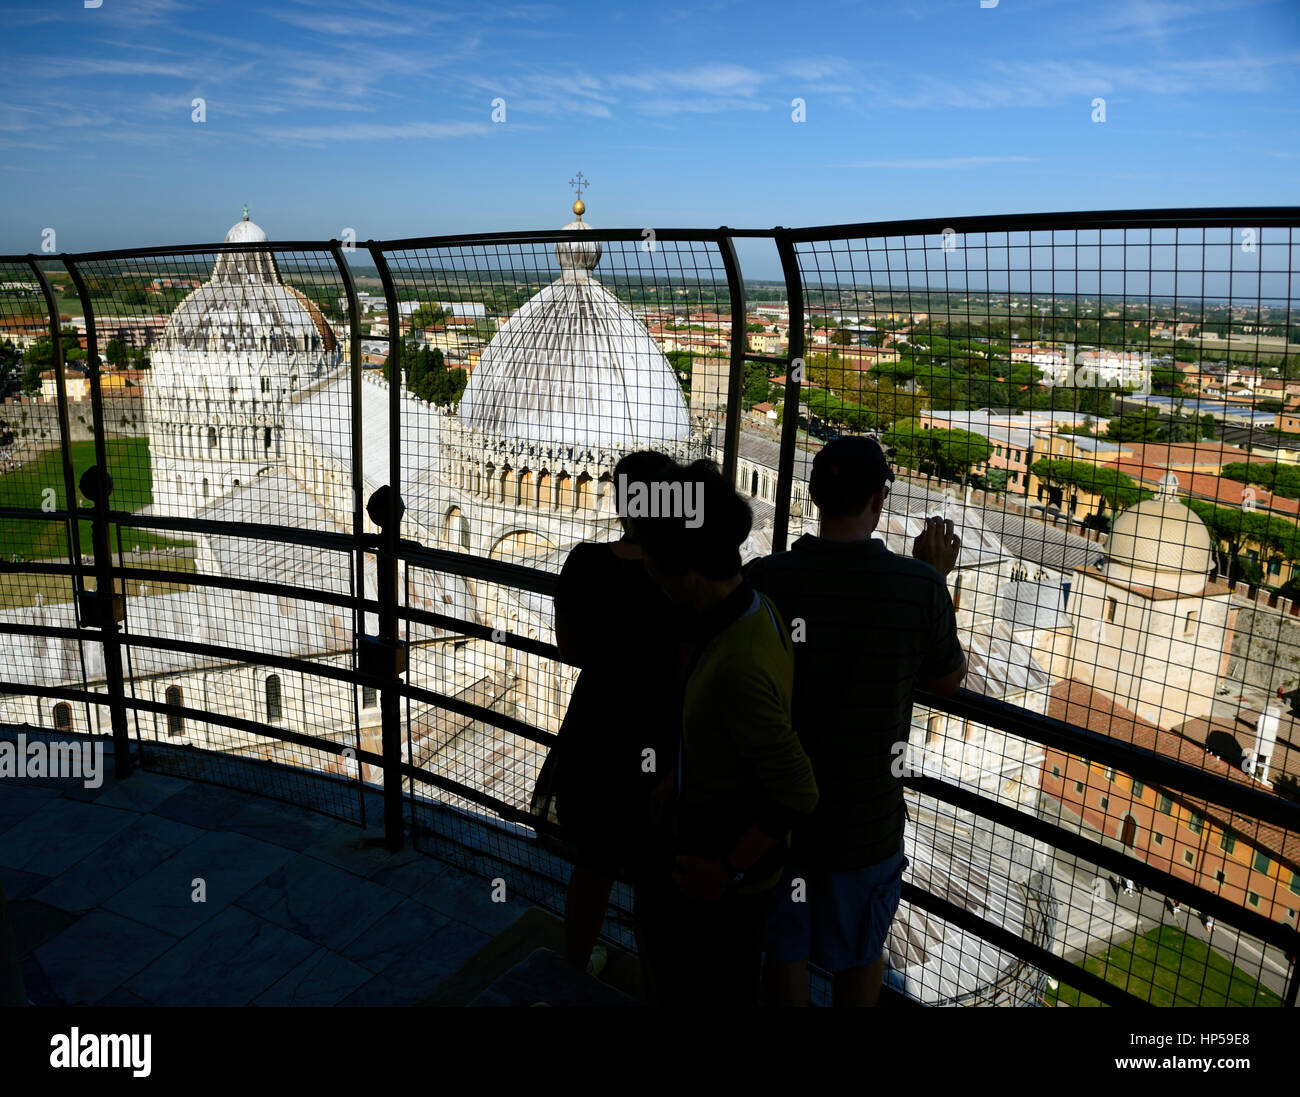 leaning Tower of Pisa, tourists, silhouette, silhouetted, couple, tourism, view, viewing, viewpoint, from, The Baptistery, Stock Photo